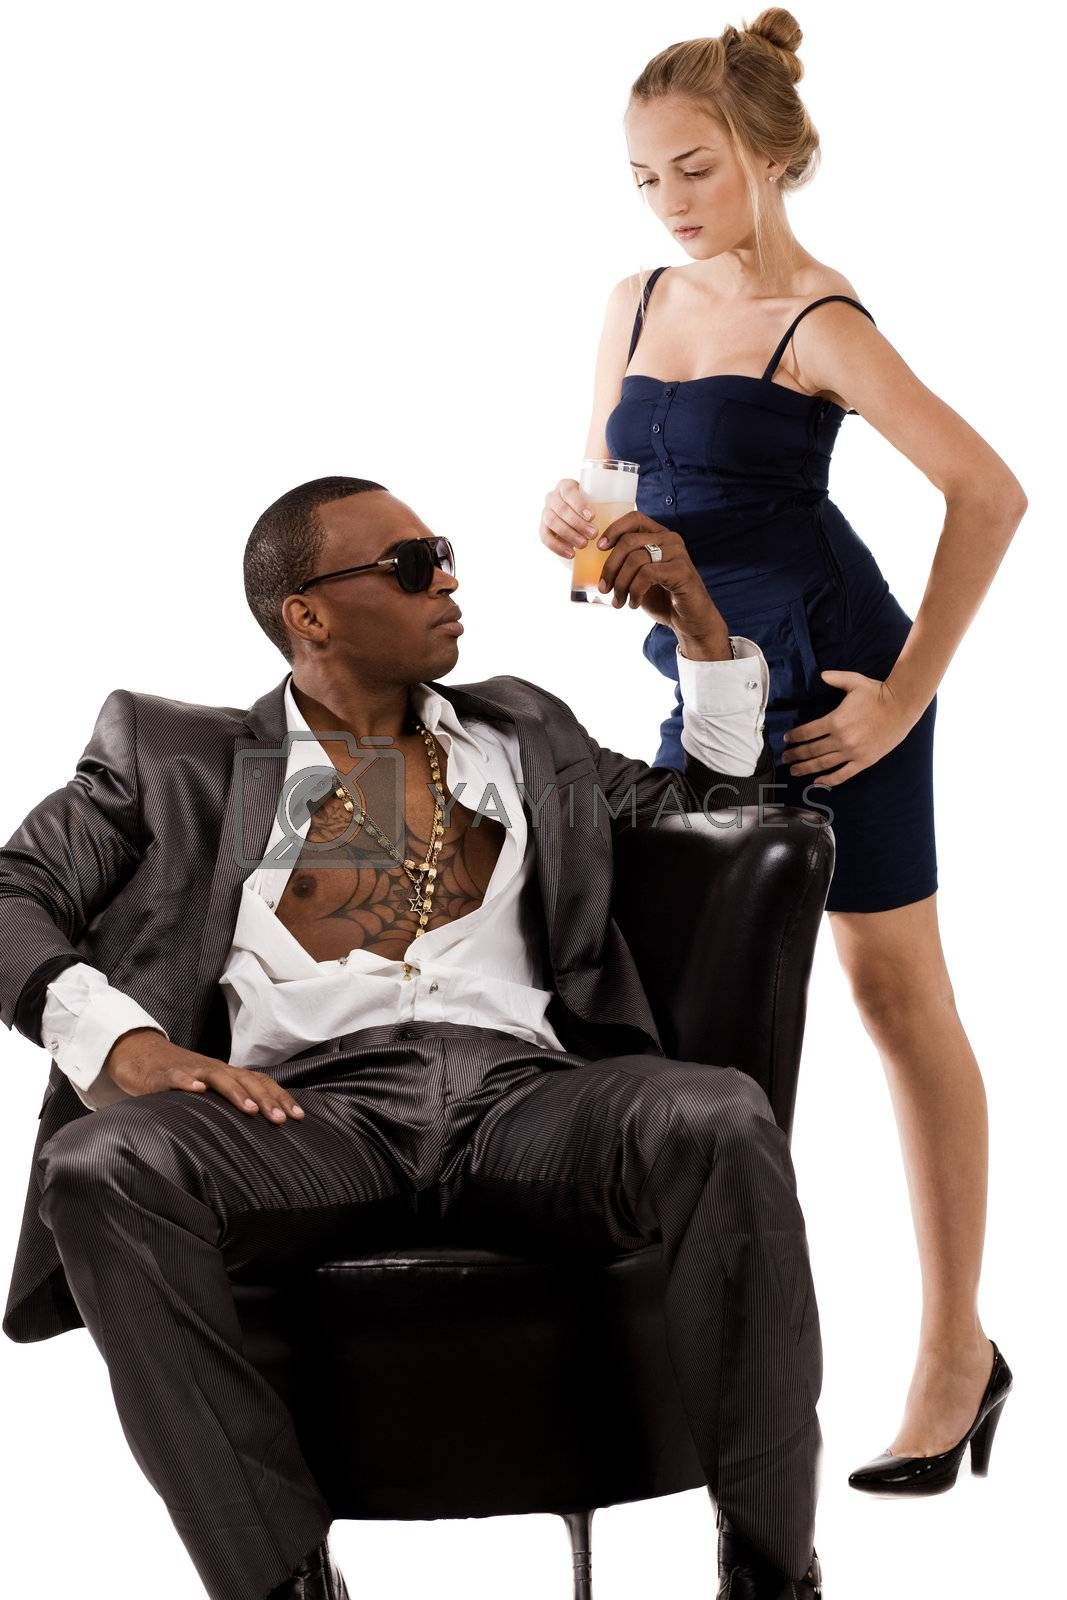 Young lady gives juice to the black man on a isolated white background